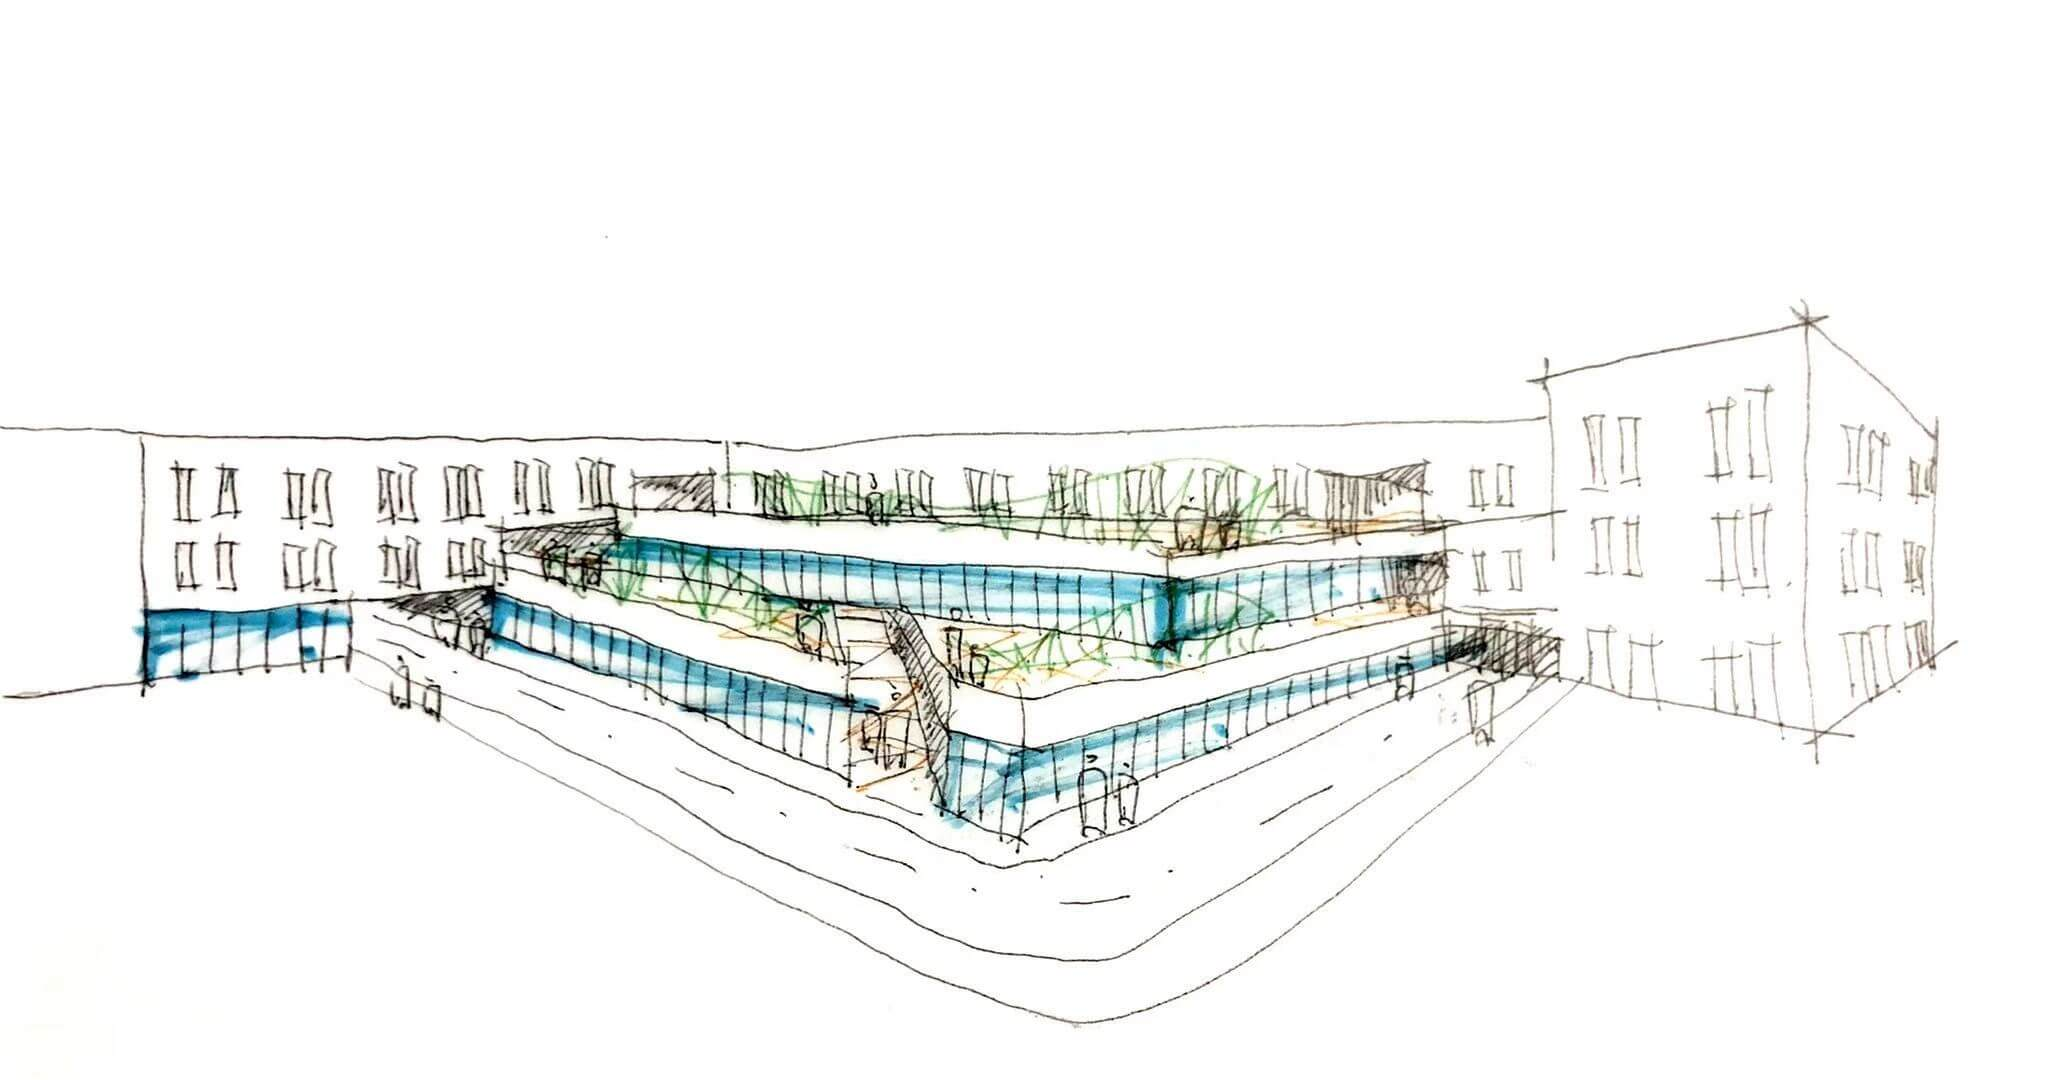 sketch of a large, three-storey building with a single-storey and double-storey glass-walled section creating a terrace effect